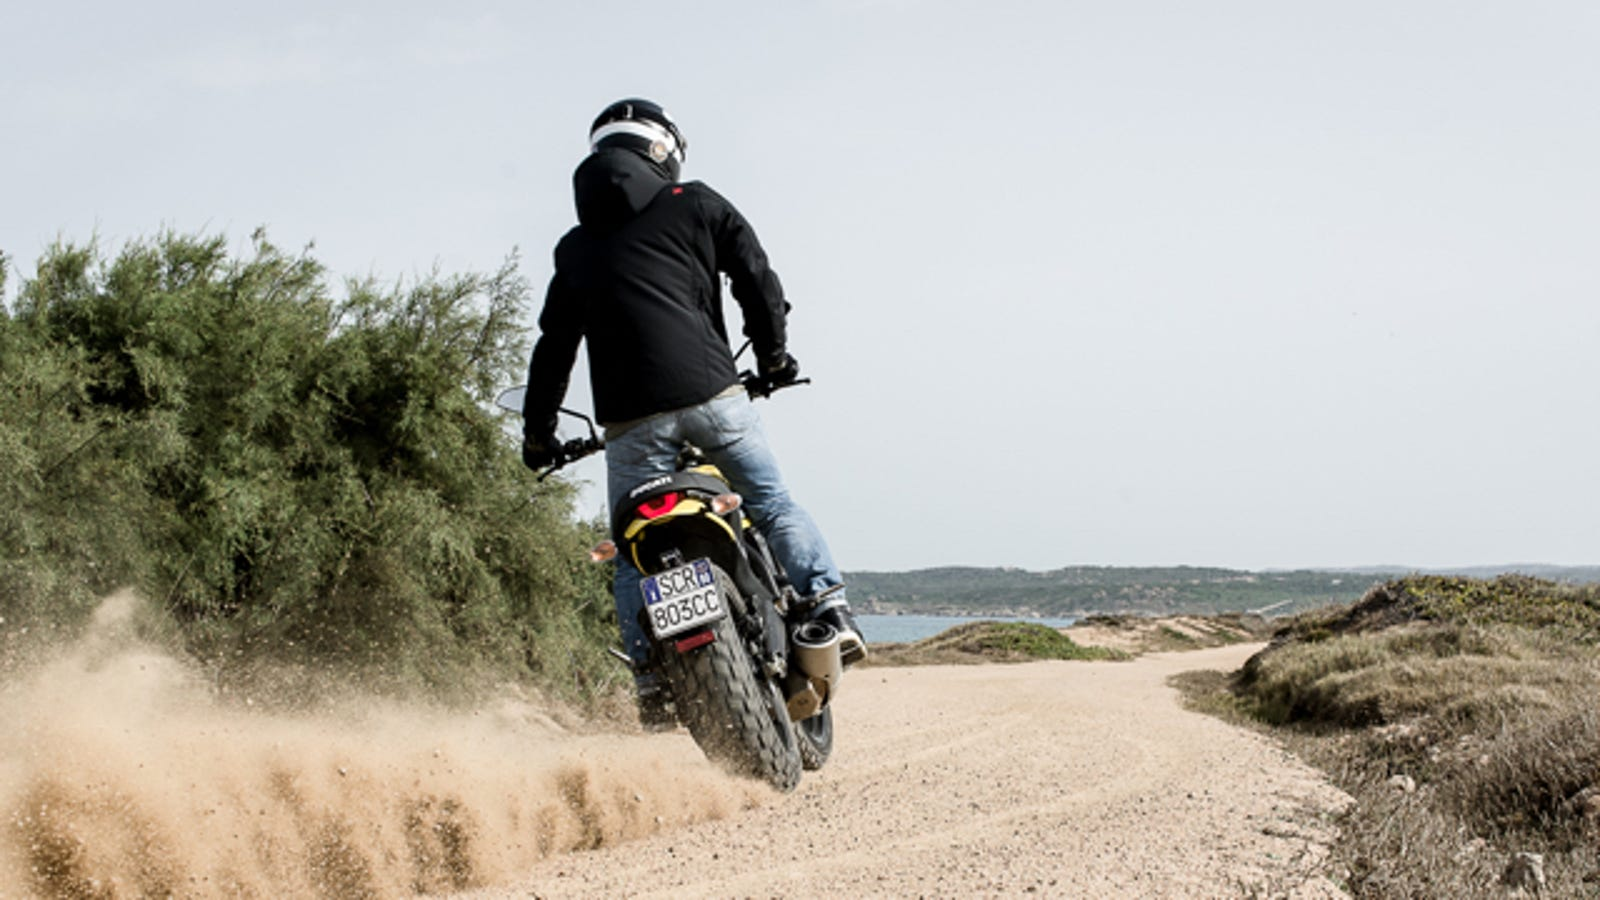 Good God The Ducati Scrambler Sounds Amazing